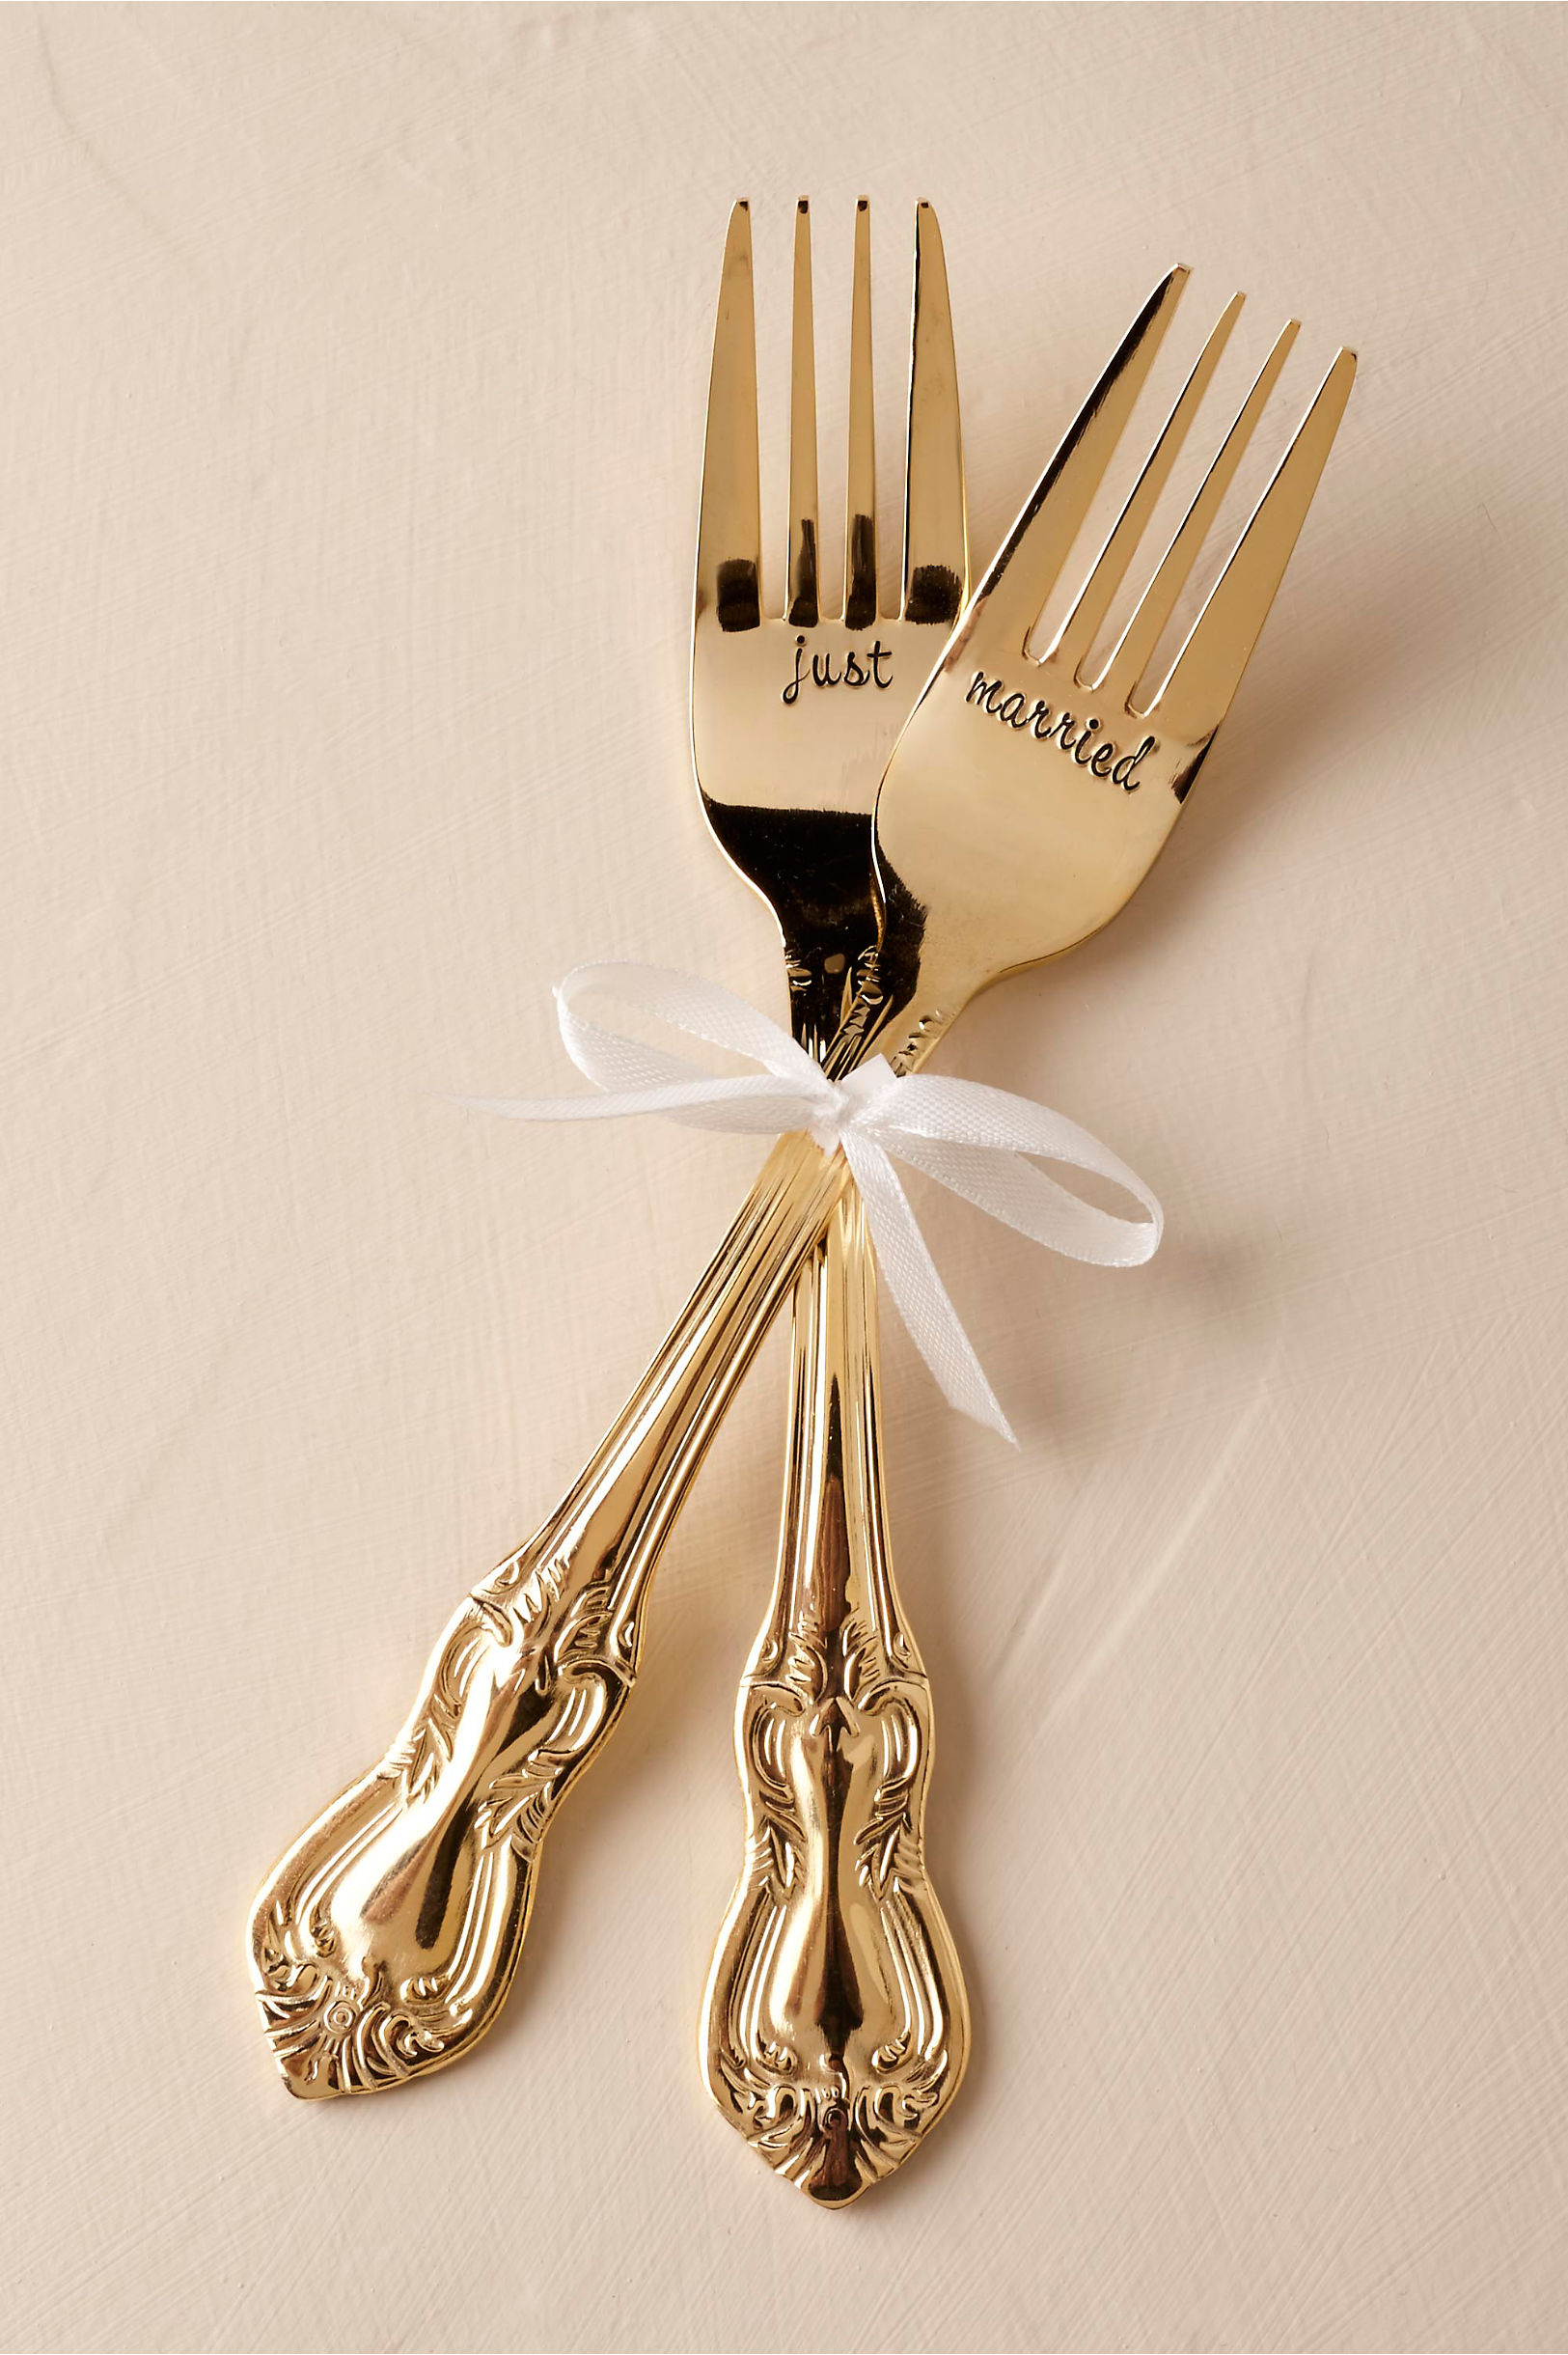 Gold just married forks engraved holiday gift ideas guide